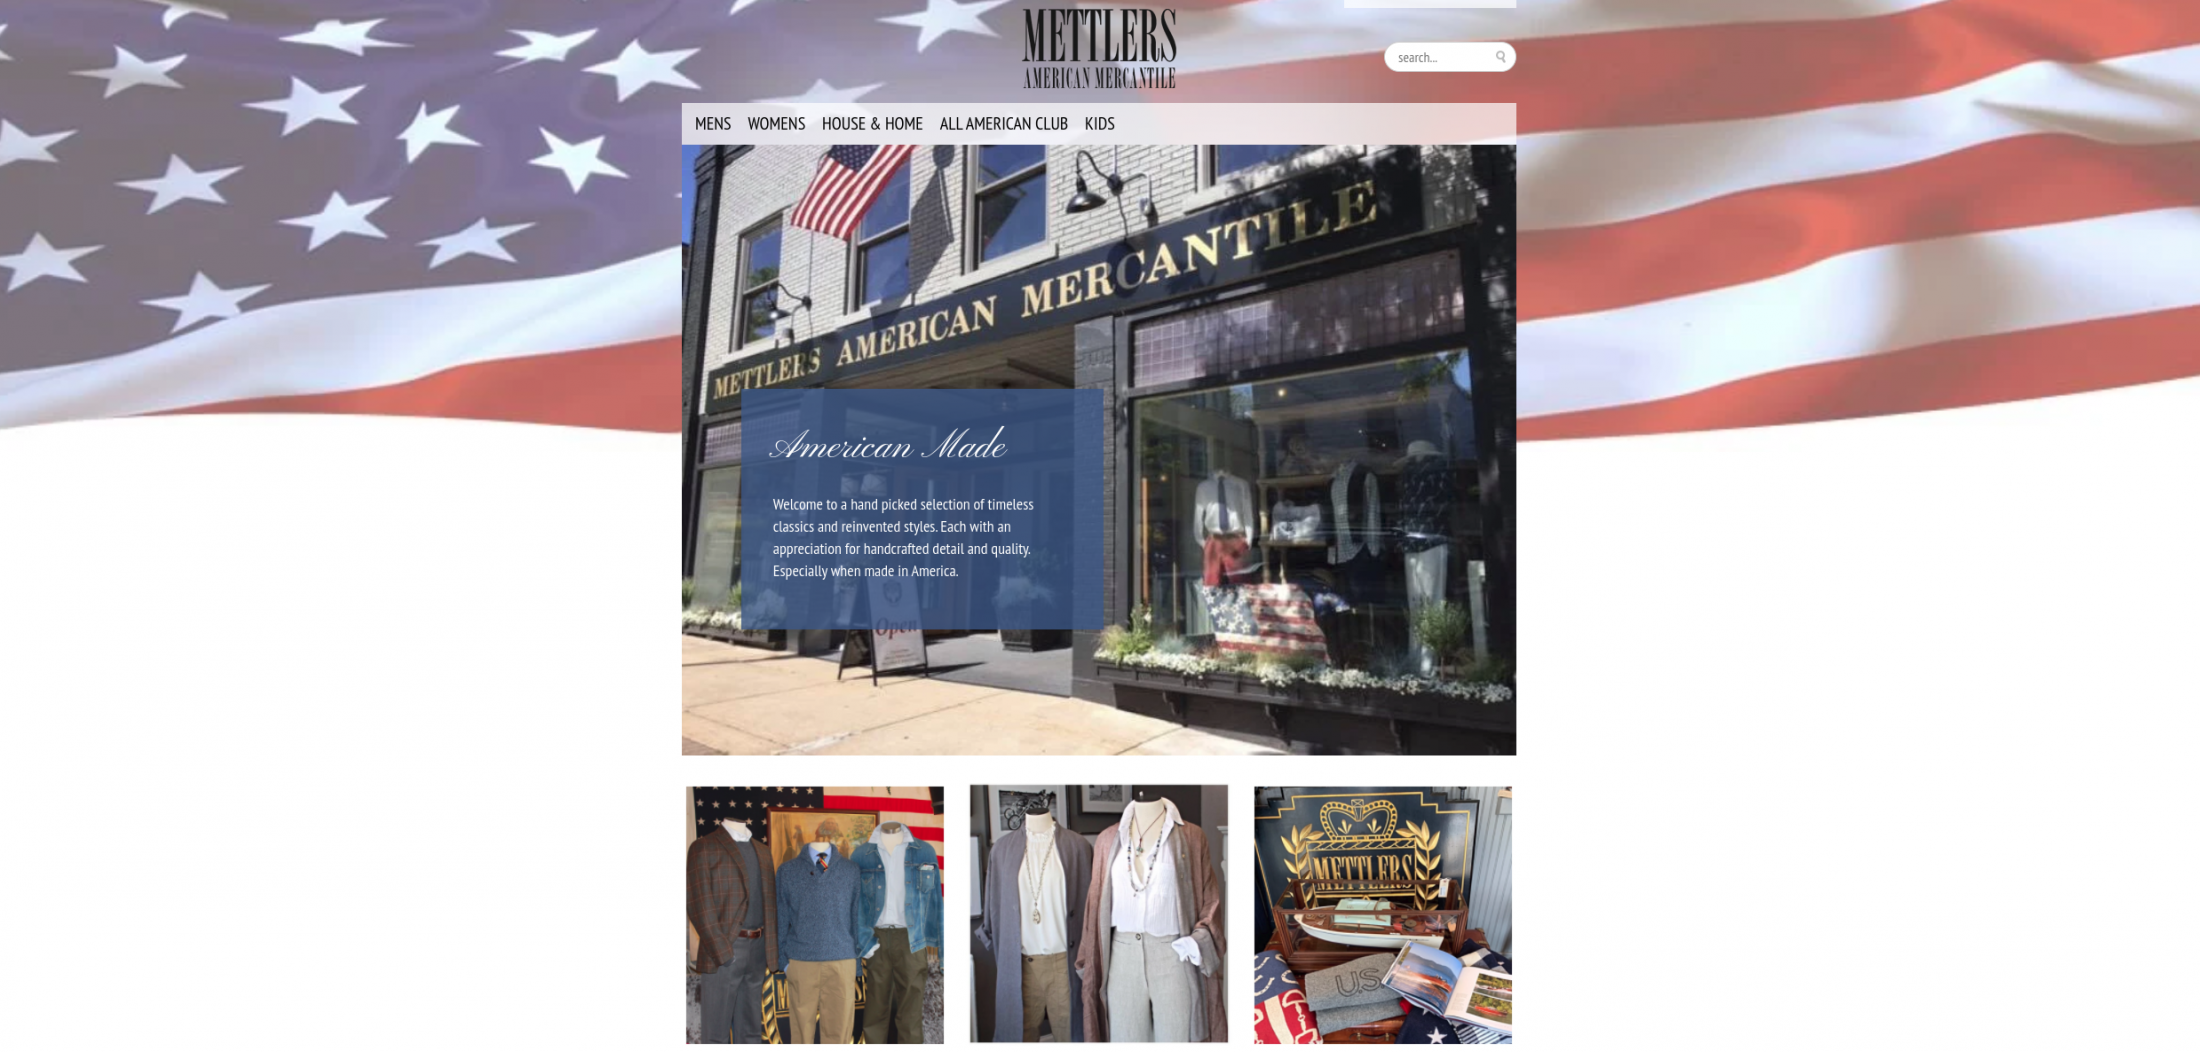 Featured Retailer: Mettlers American Mercantile